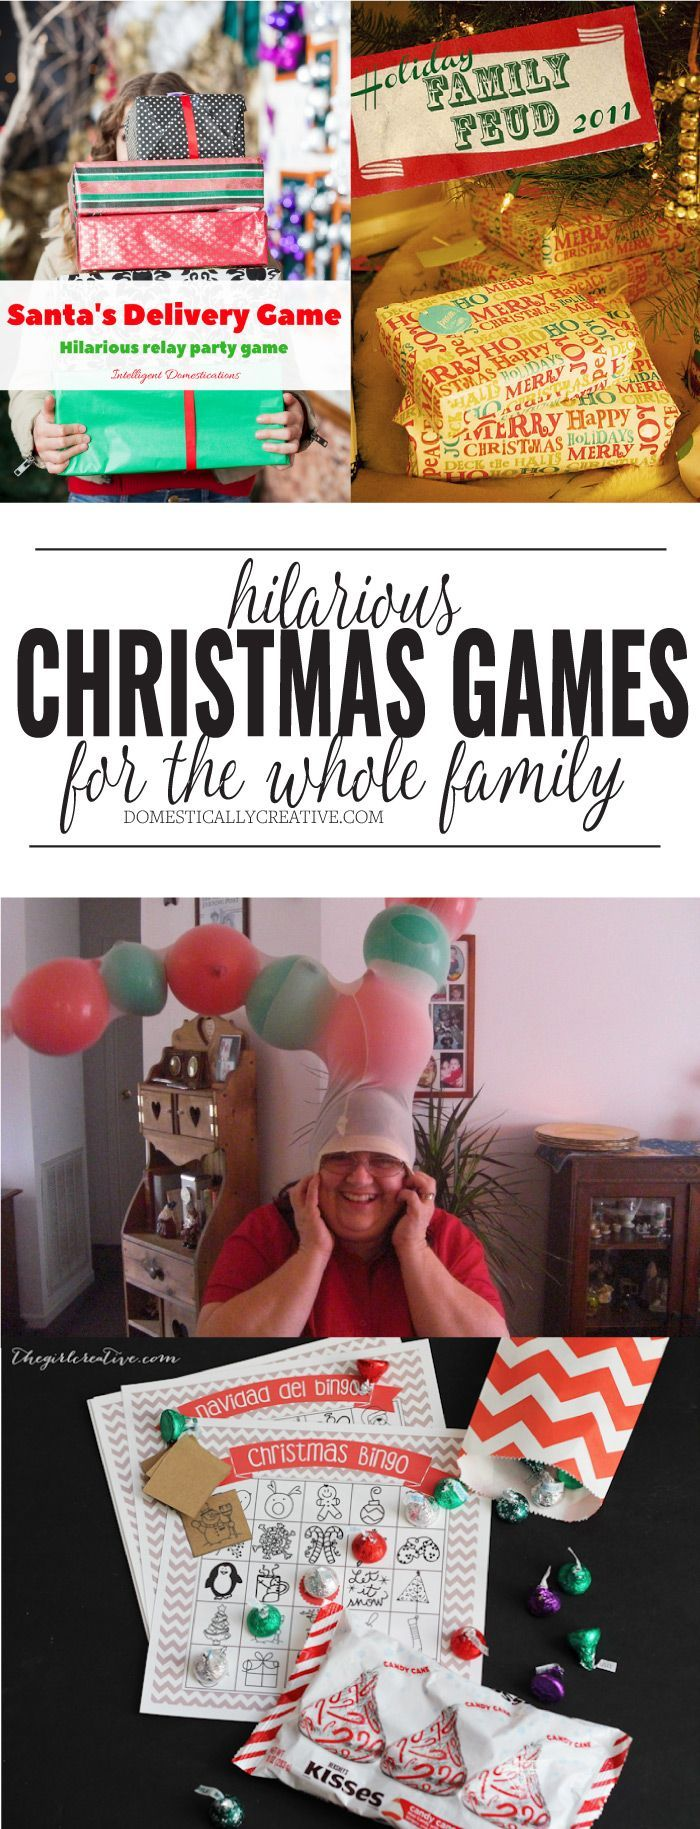 Hilarious Christmas Party Games   Pinterest   Christmas party games ...